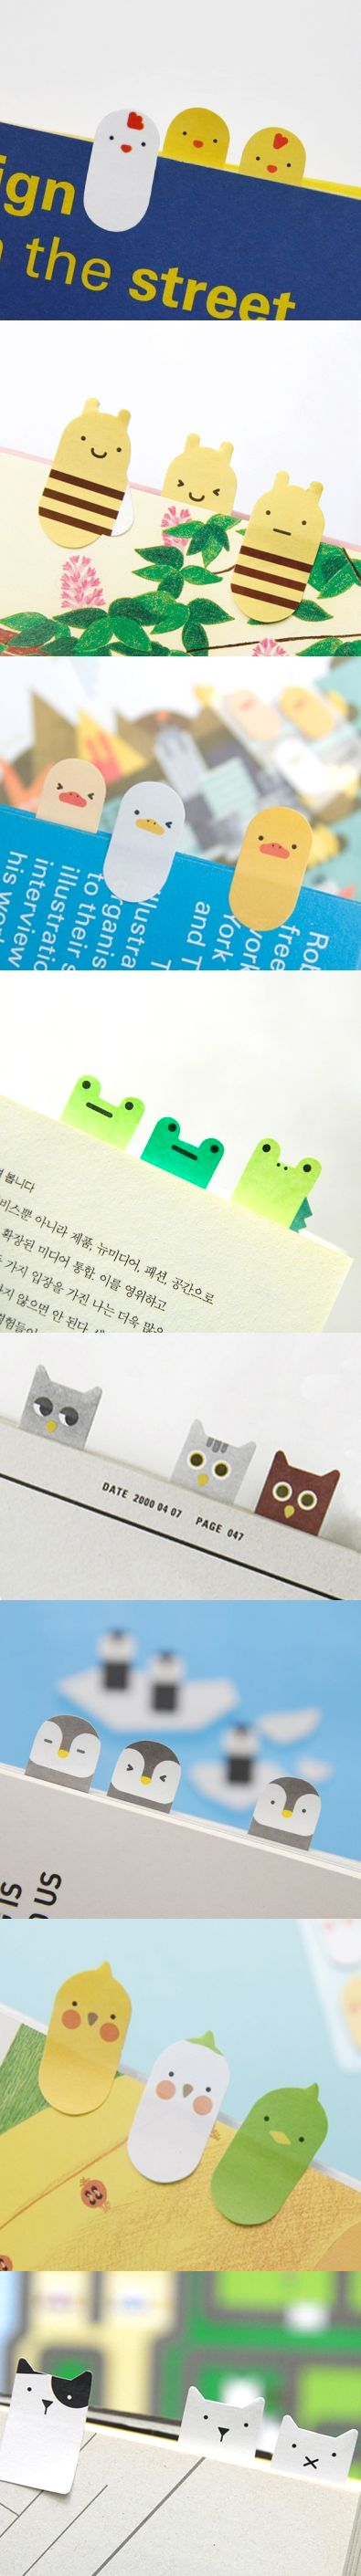 This is a really cute & adorable sticky note collection! The collection comes with 400 sheets of index sticky notes for you to mark up your book, index your favorite page, write a short memo or note! They are perfect for work, school, and as a gift too! mochithings.com carries this collection and all 8 individual designs are available there too!